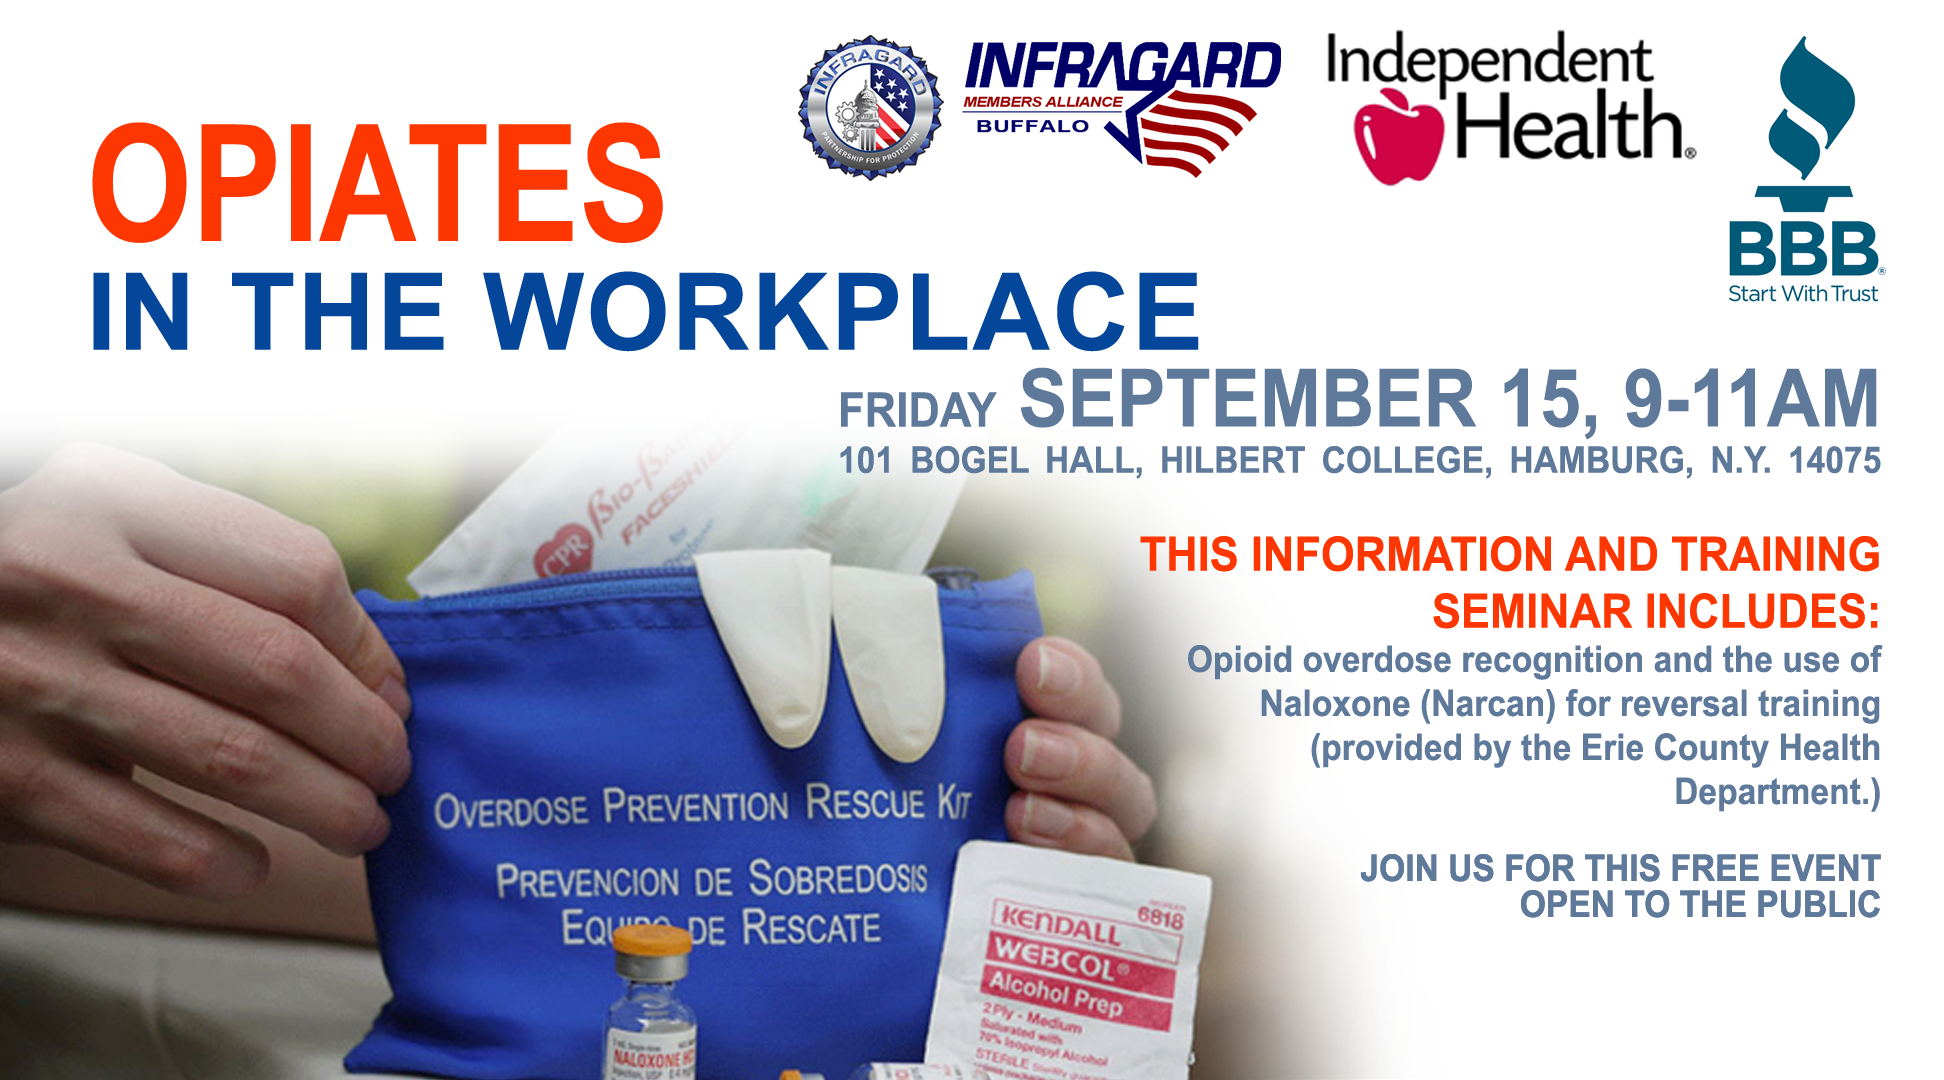 Opiates in the Workplace